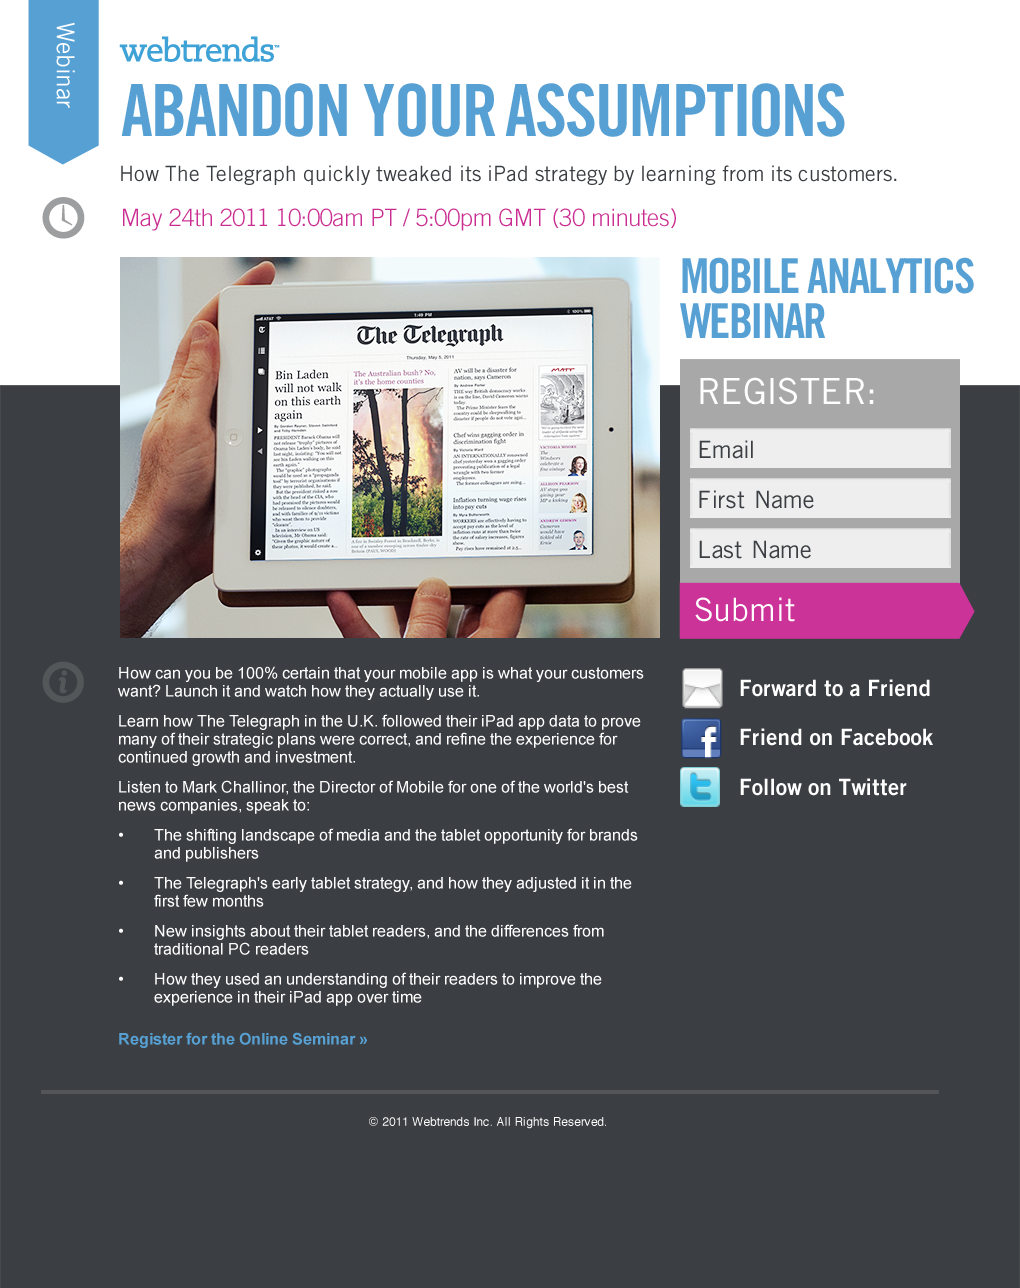 JAMES SITZER | Webtrends email and landing page templates